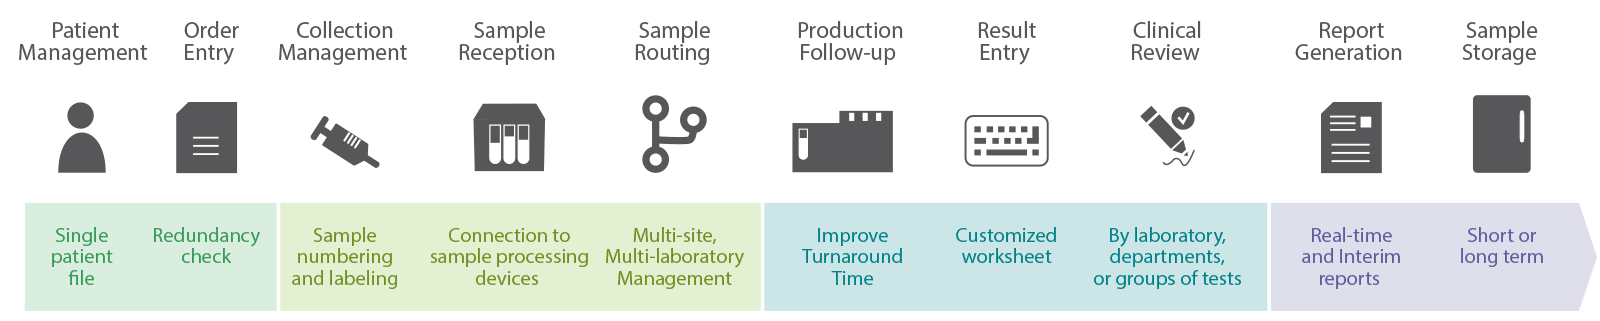 Workflow in the general laboratory with TDNexLabs